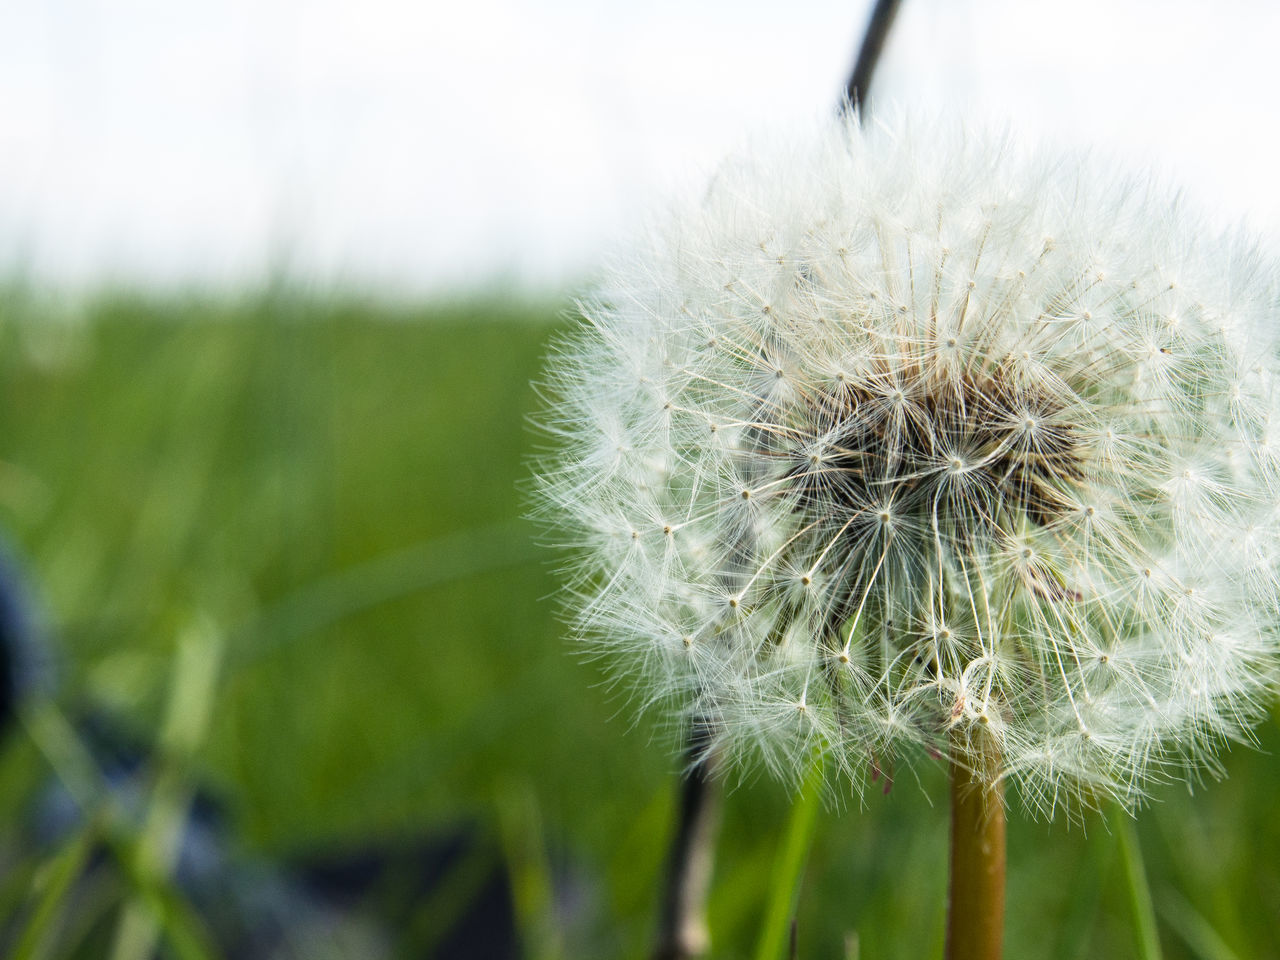 growth, nature, flower, dandelion, fragility, focus on foreground, close-up, plant, beauty in nature, day, freshness, no people, outdoors, green color, flower head